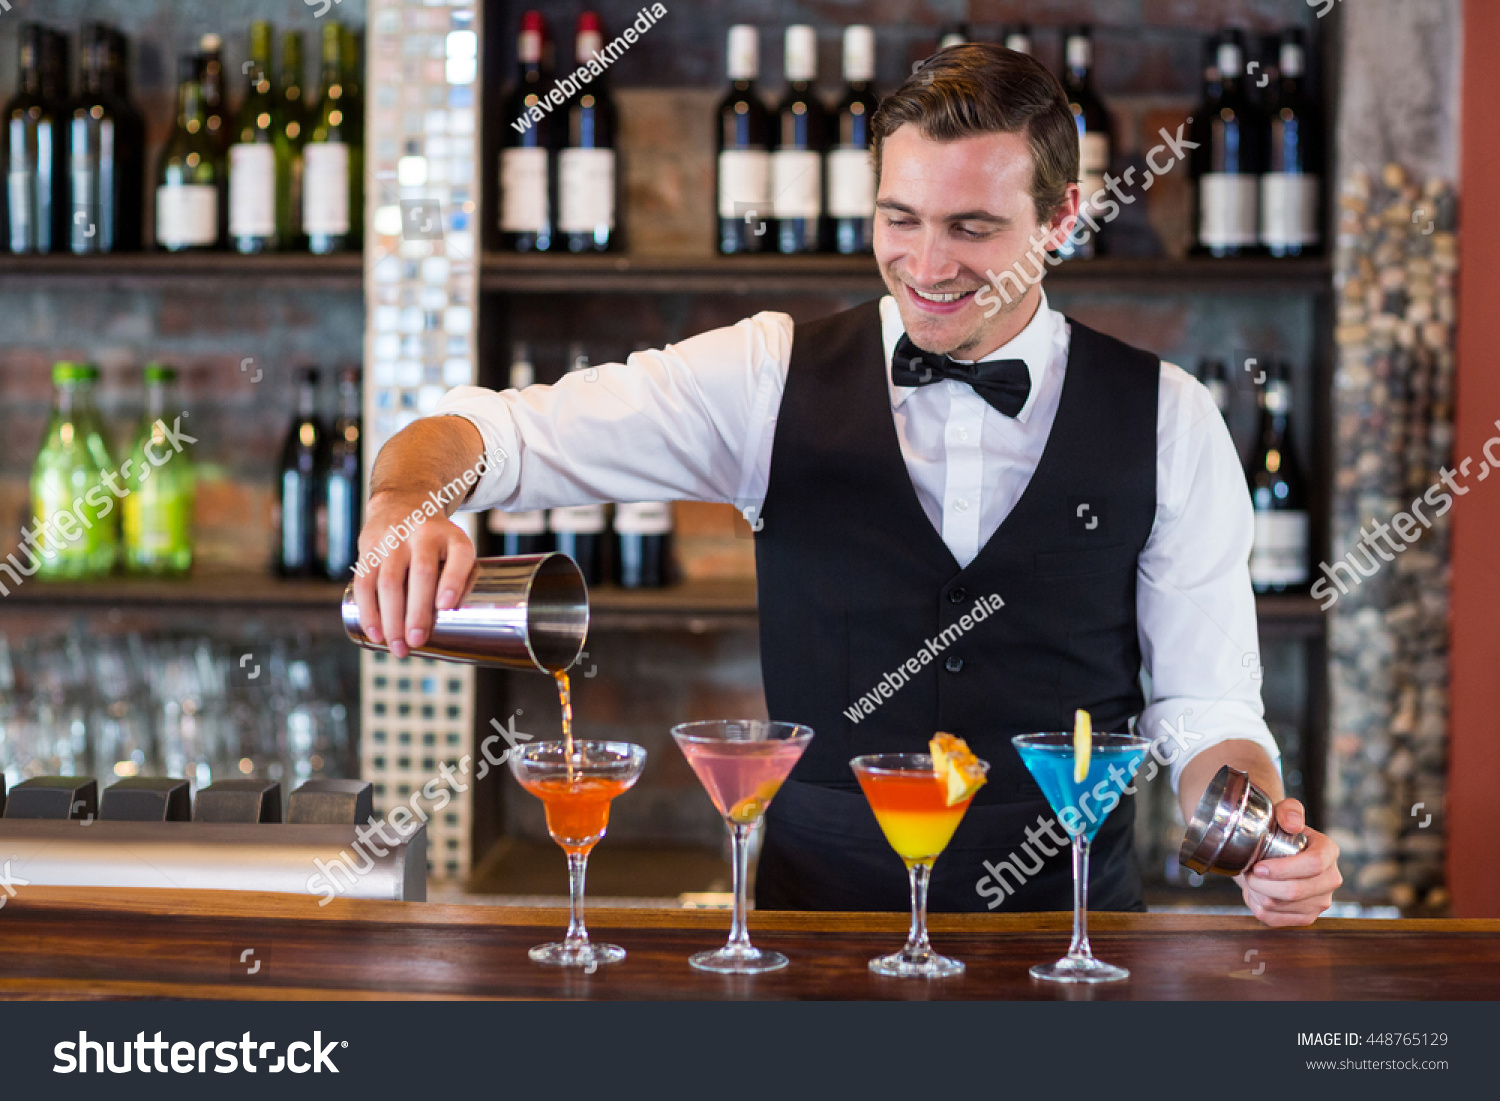 Bartender pouring a orange martini drink in the glass at bar #448765129